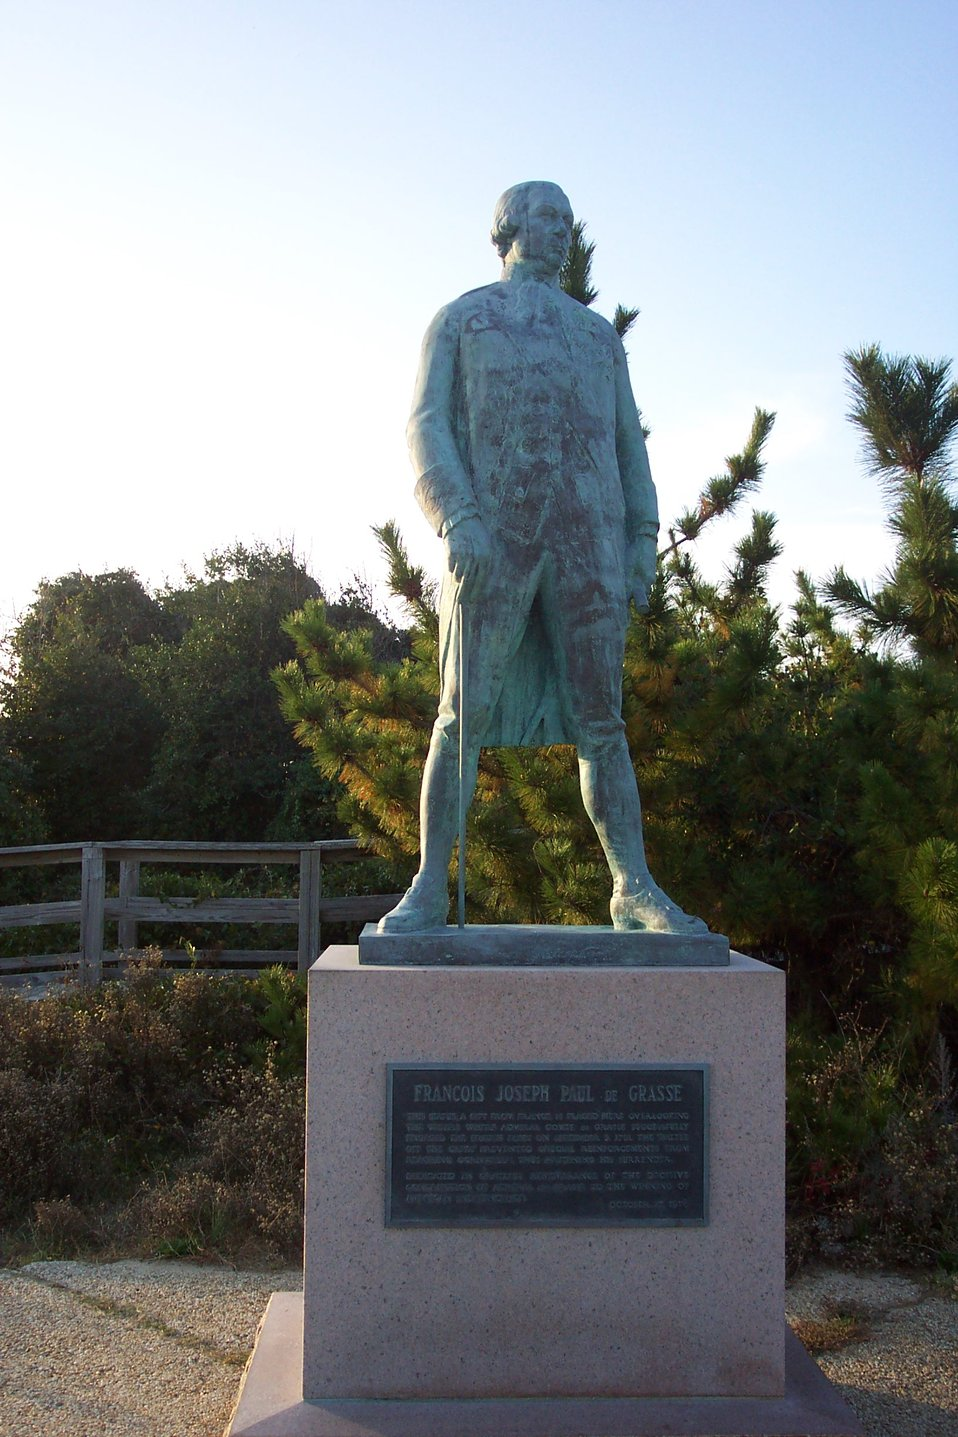 Statue of Admiral Francois Joseph Paul de Grasse, admiral of the French fleet that trapped the British Army at Yorktown in 1781, effectively ending the  American Revolution with the defeat of Cornwallis.